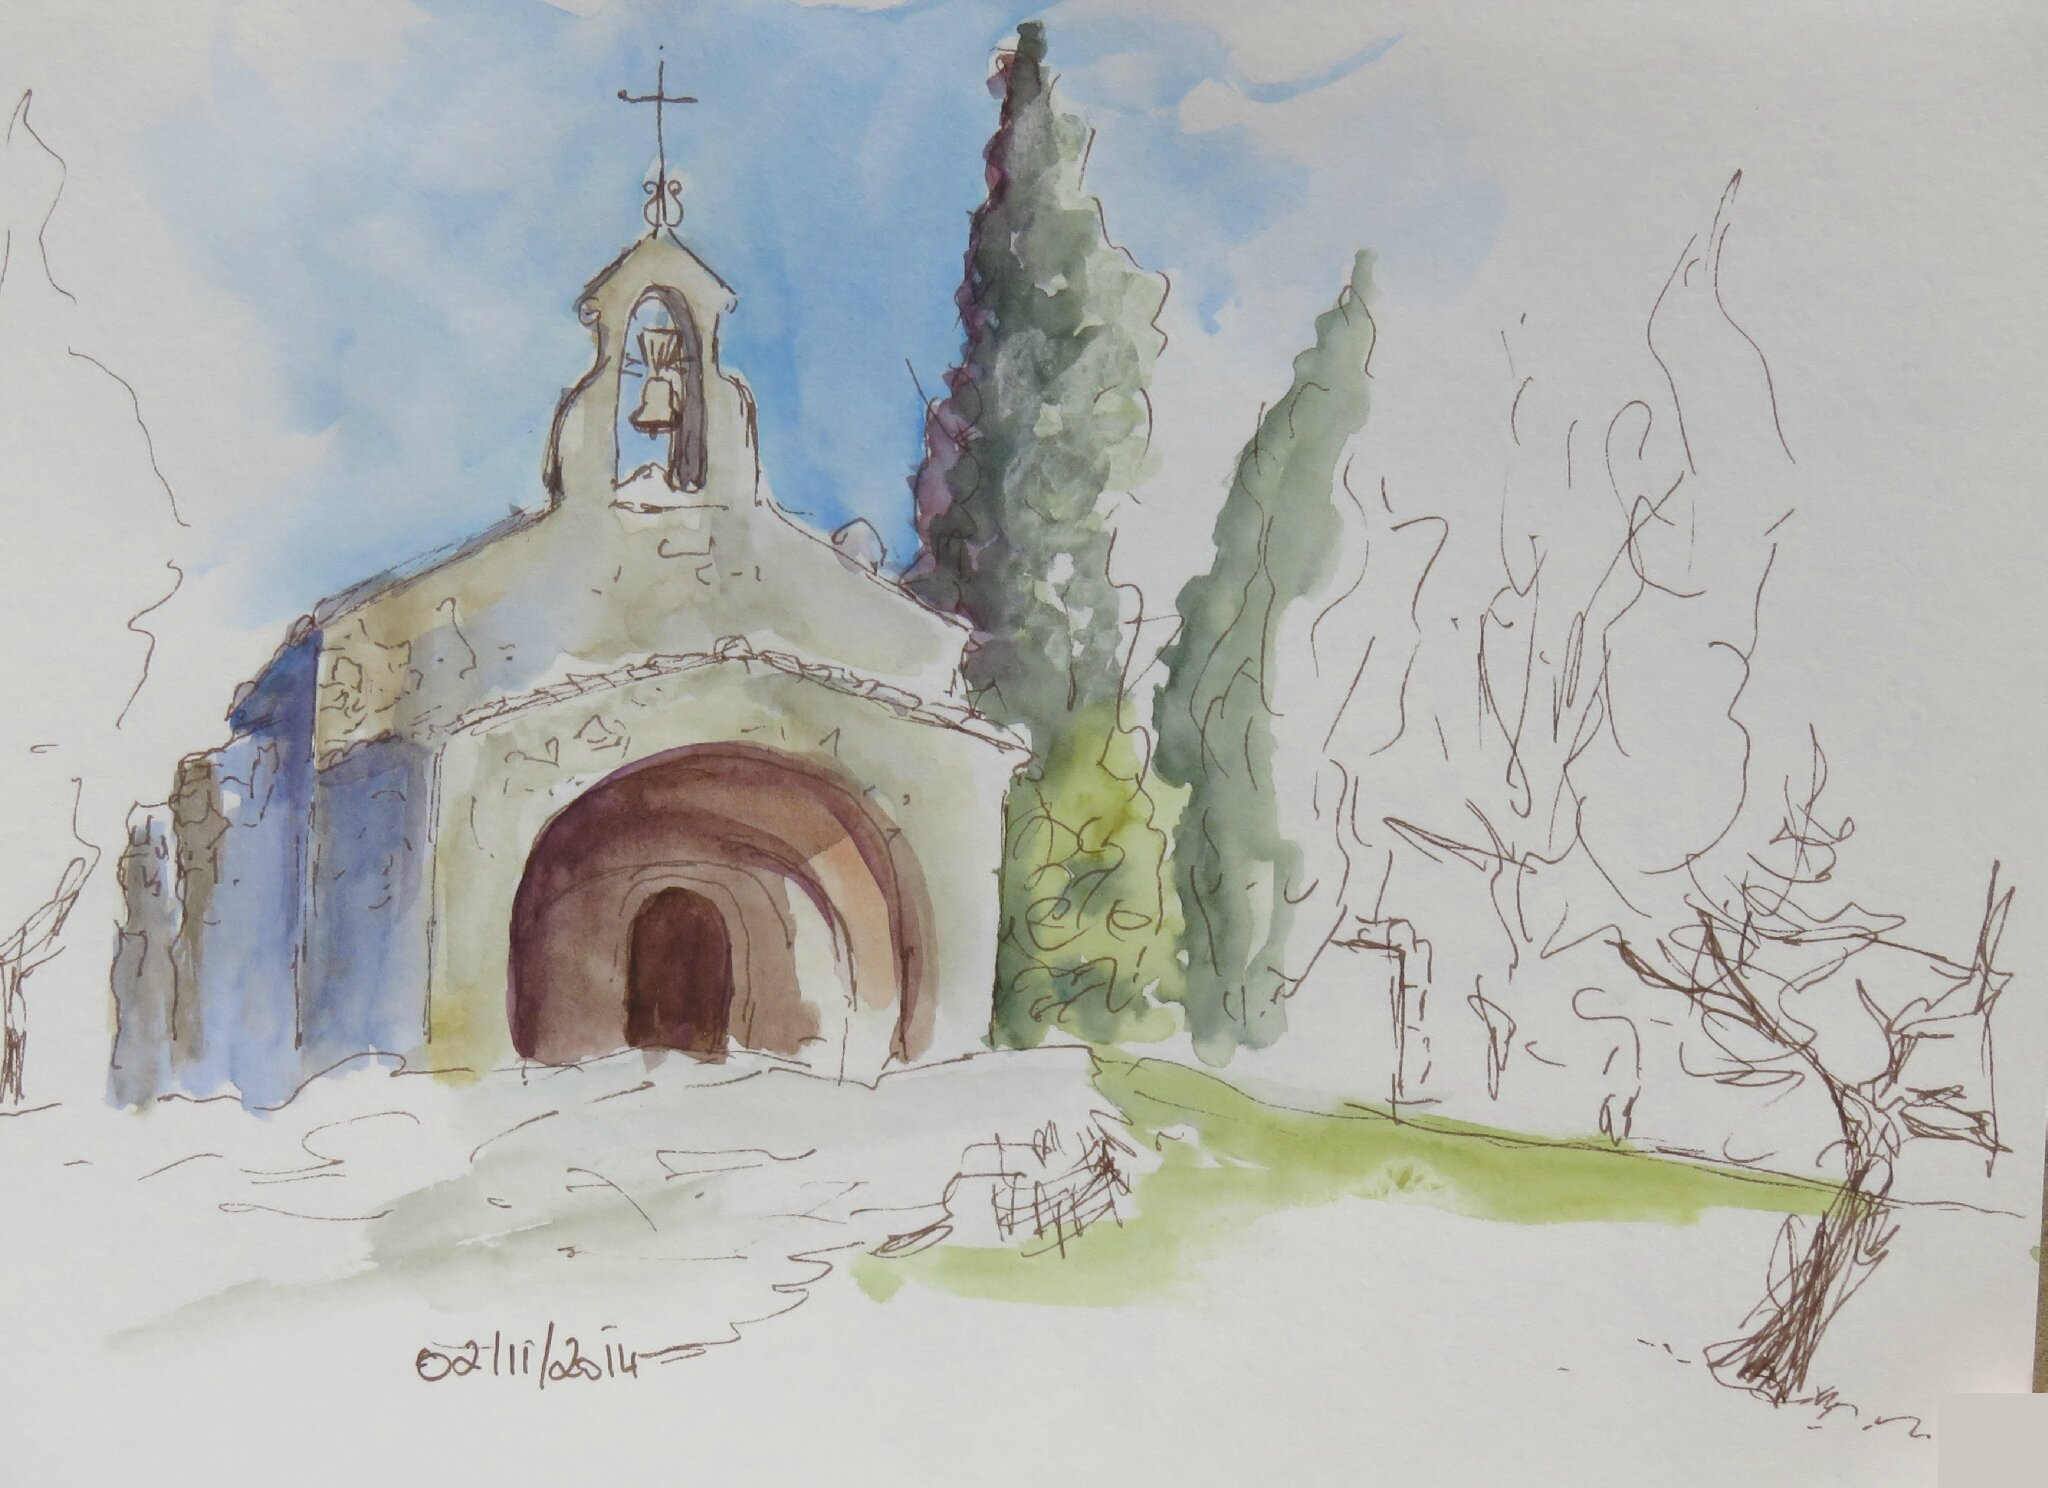 13-Chapelle-d-eygalieres-2